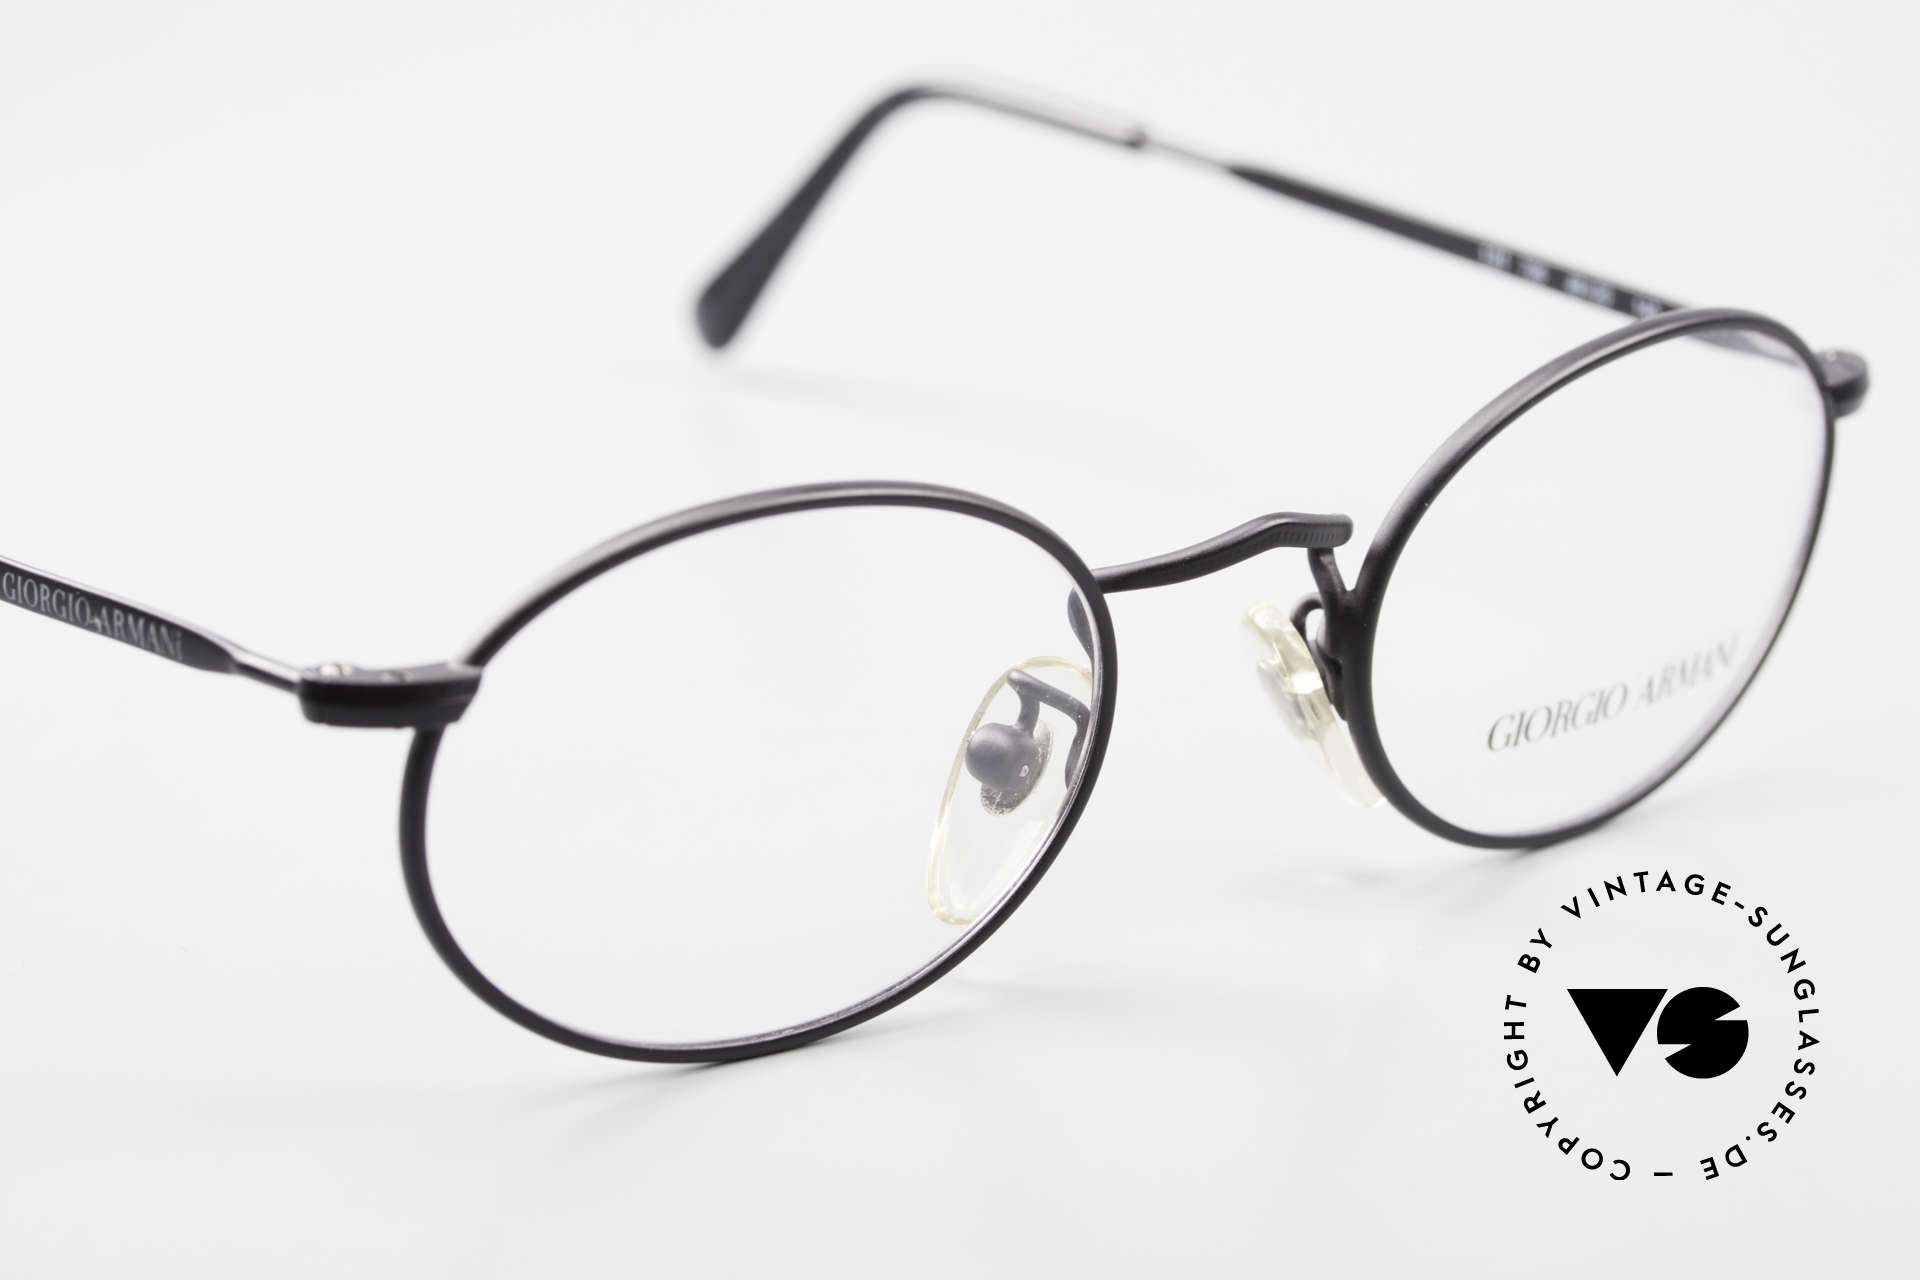 Giorgio Armani 131 Vintage Eyeglasses Oval Frame, NO RETRO EYEWEAR, but a 30 years old ORIGINAL!, Made for Men and Women